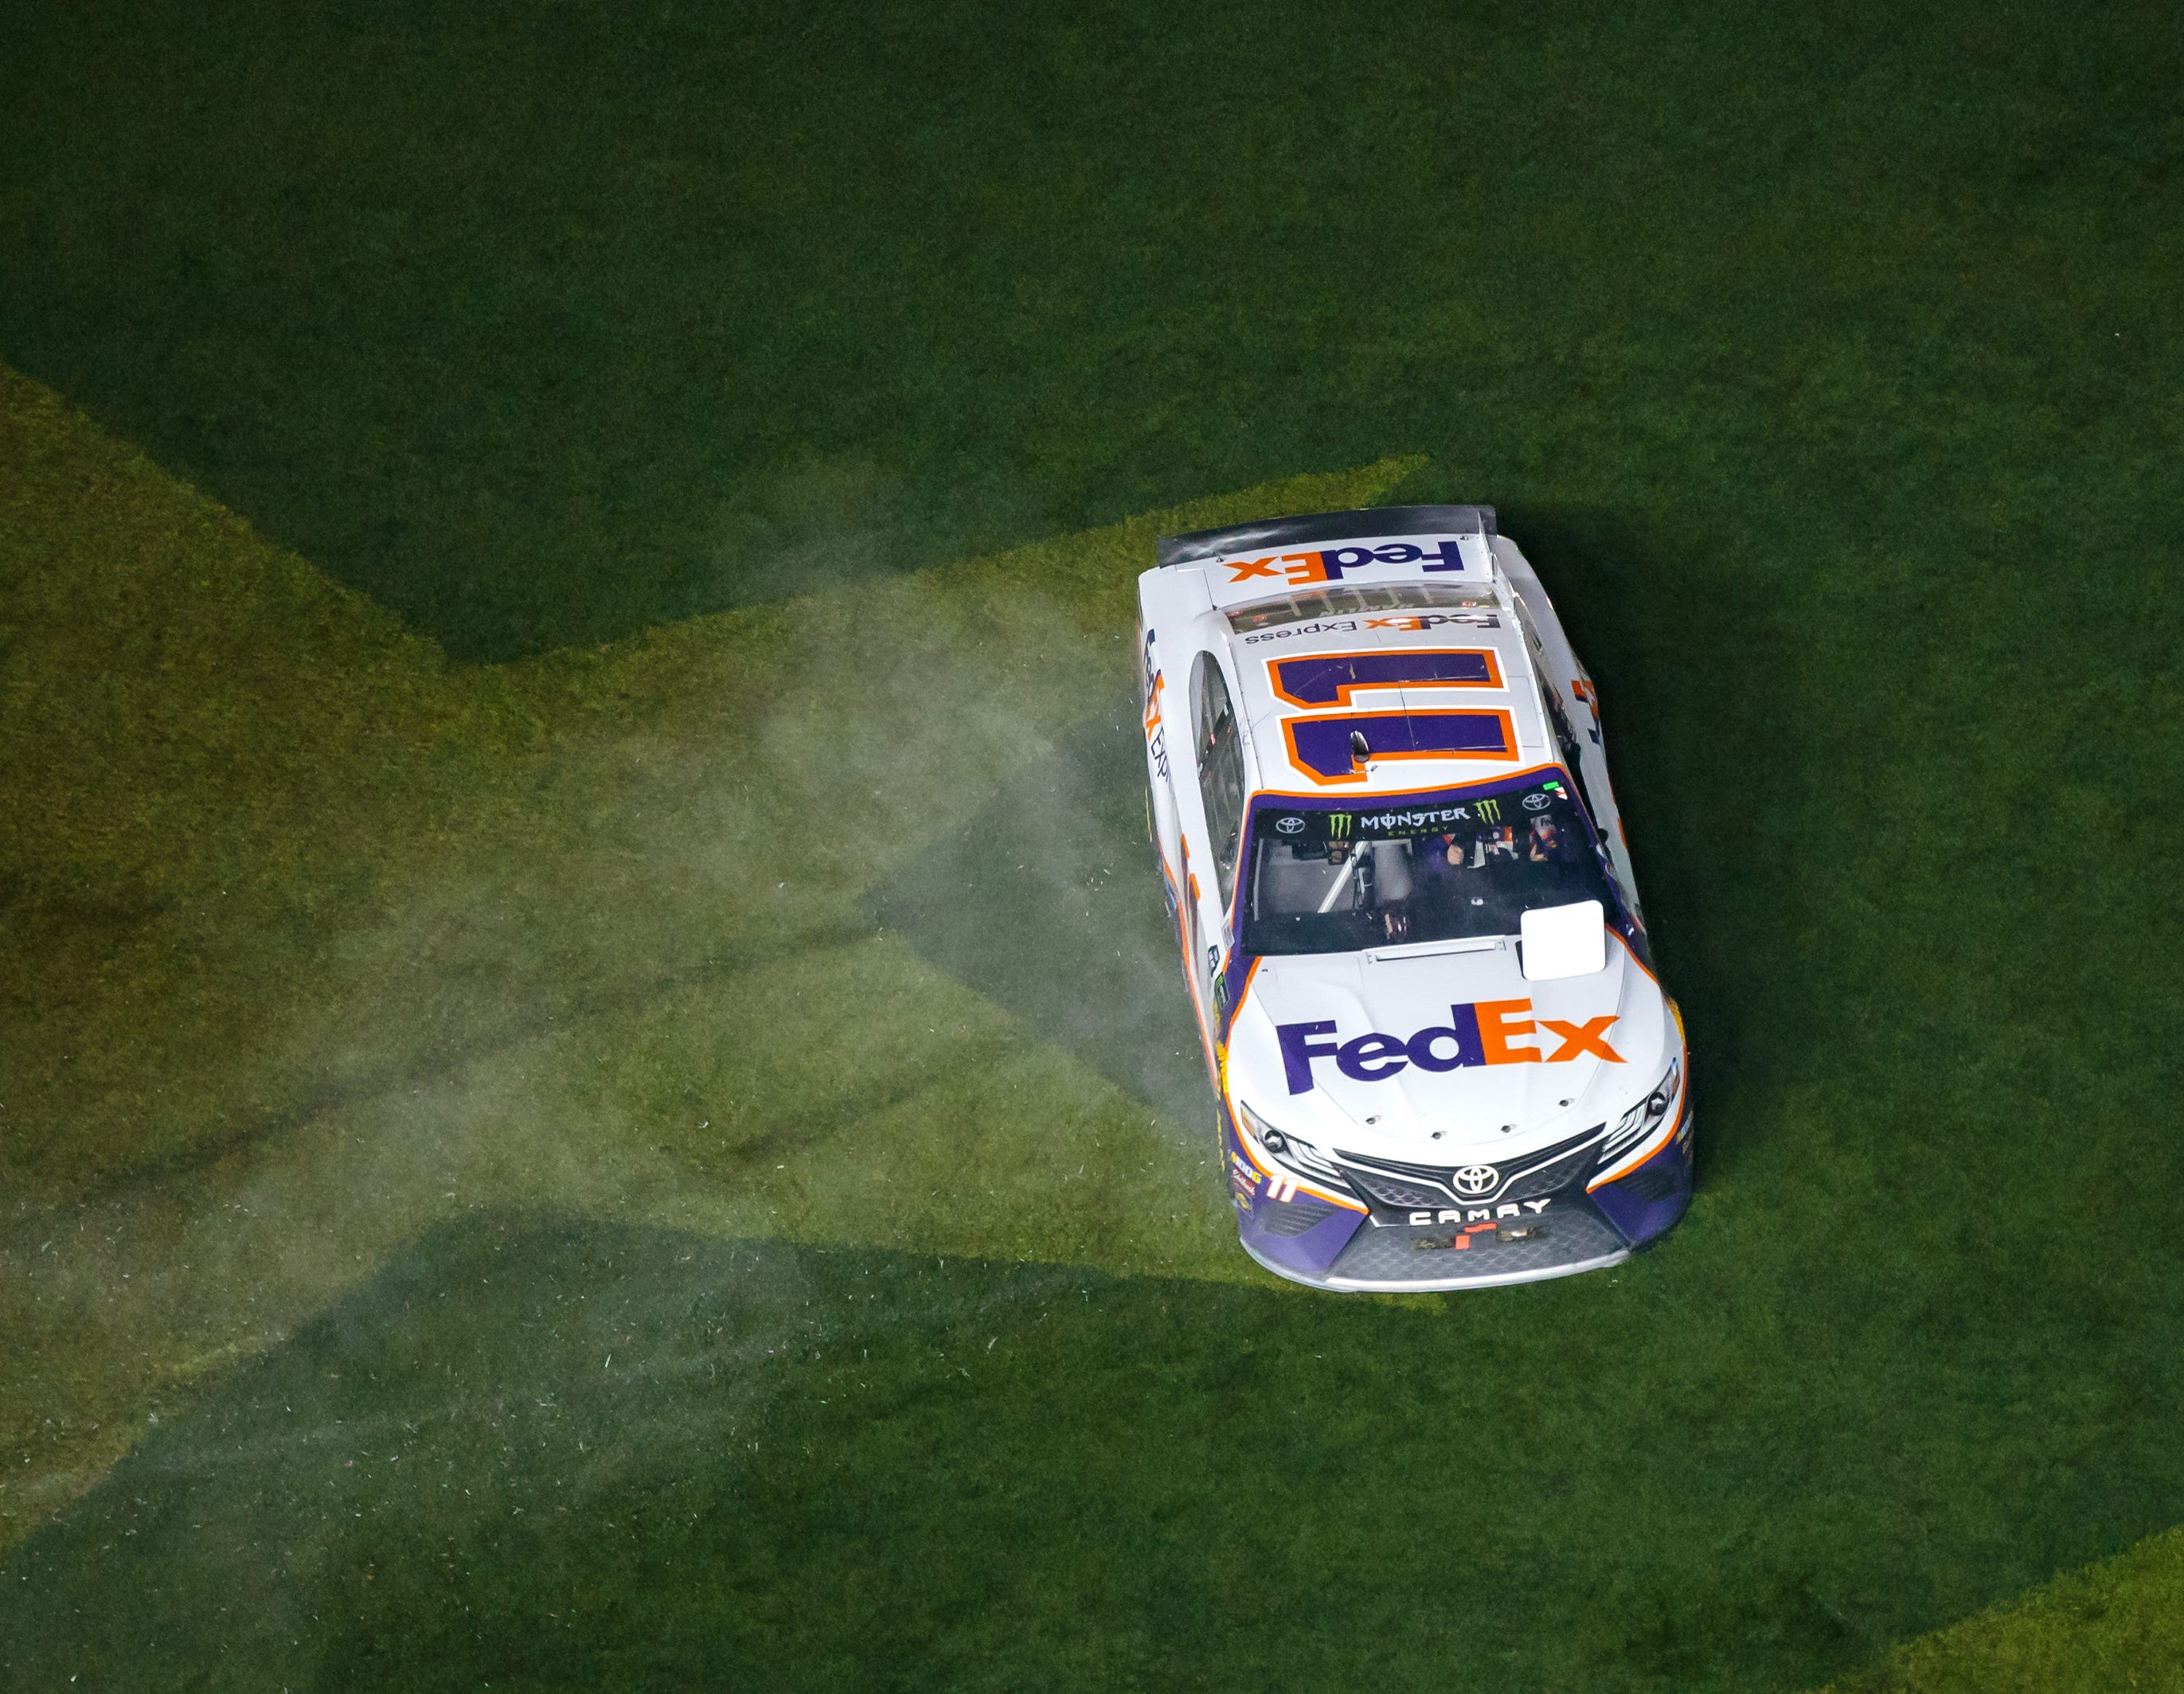 Denny Hamlin does a burnout onto the infield grass at Daytona International Speedway after winning the 2019 Daytona 500.